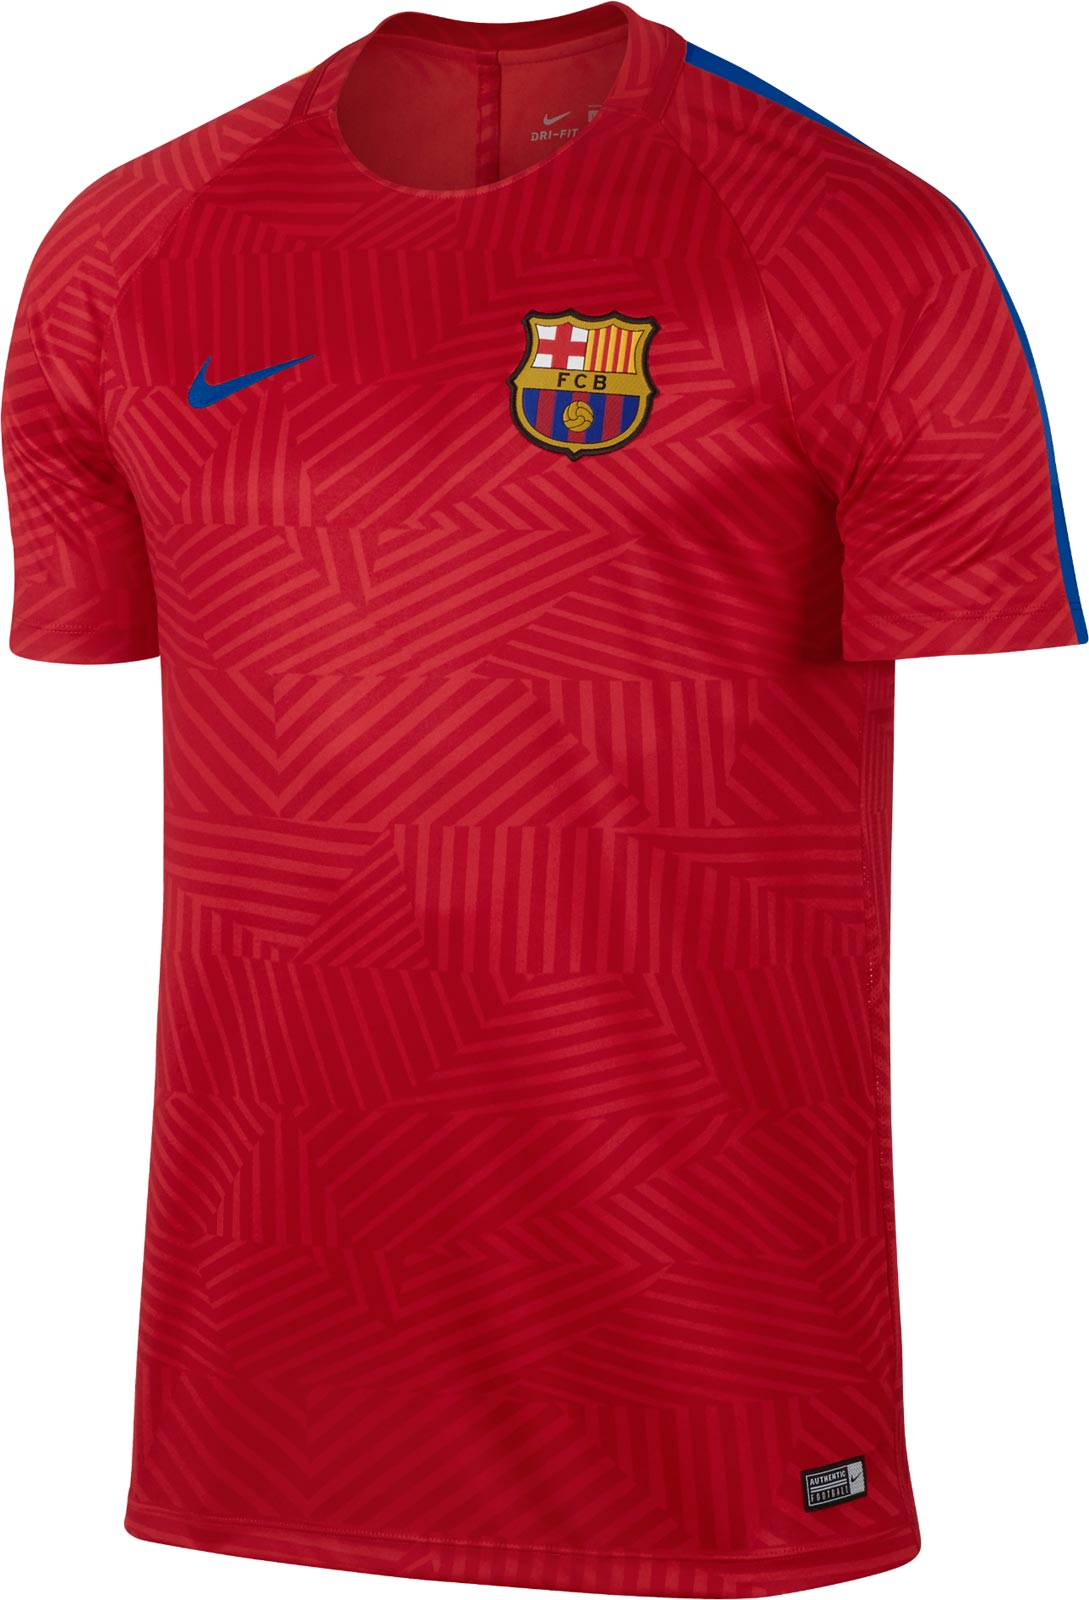 check out 8441e e3c0a fc barcelona match jersey - allusionsstl.com